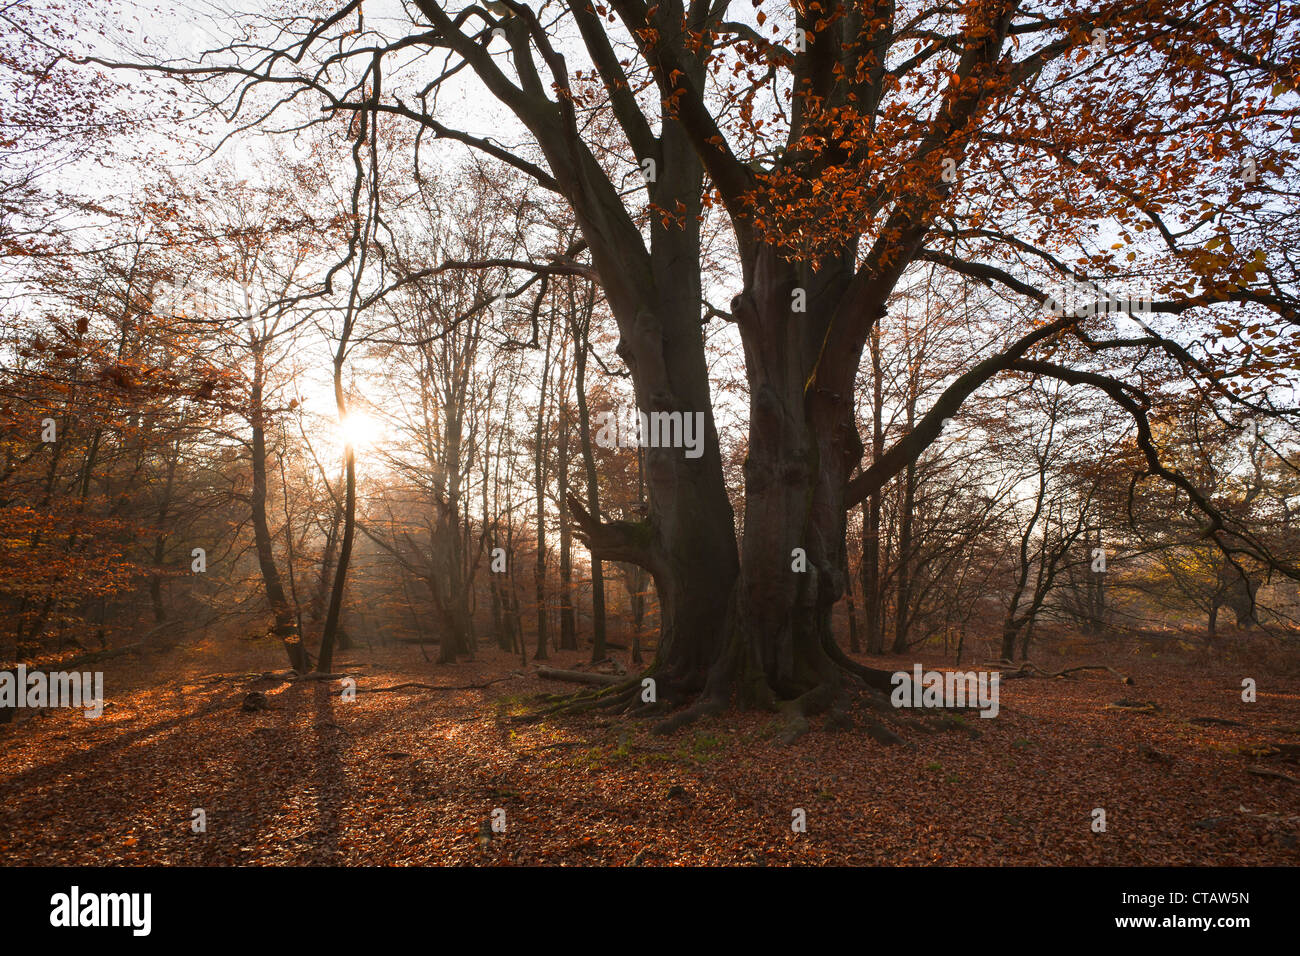 Autumnal forest with old beech tree at nature reserve Urwald Sababurg, Reinhardswald, Hesse, Germany, Europe - Stock Image